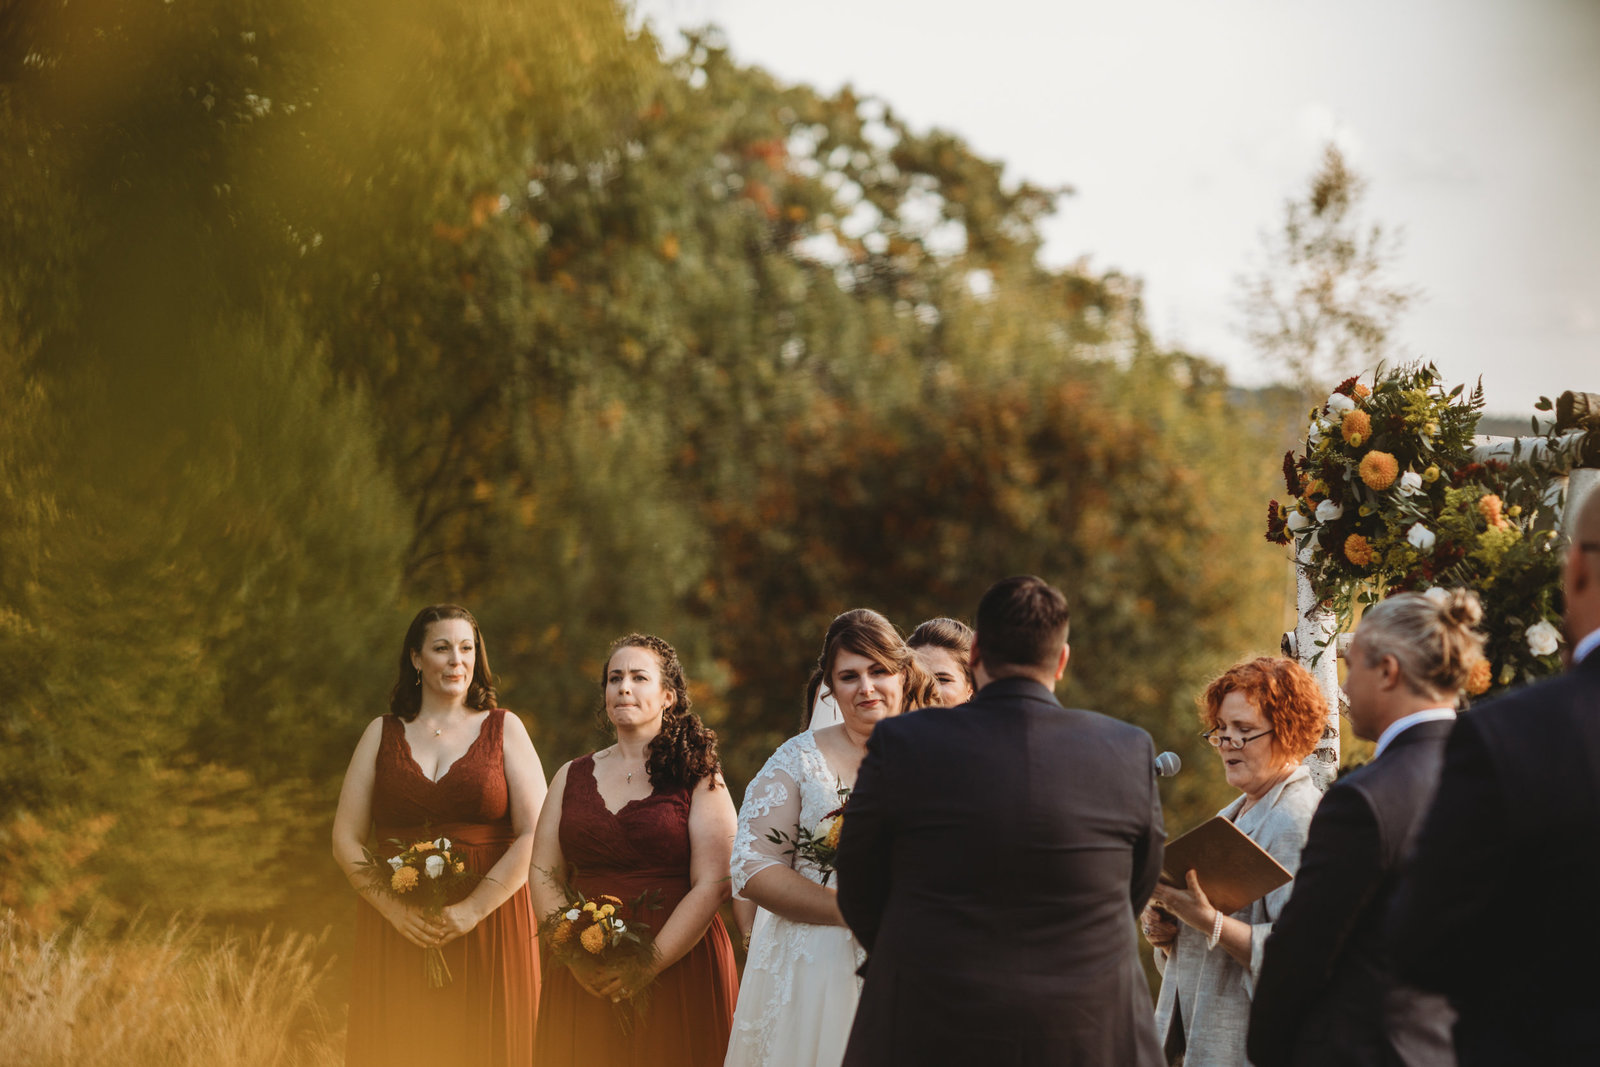 bride and groom exchange vows during outdoor fall ceremony in massachusetts